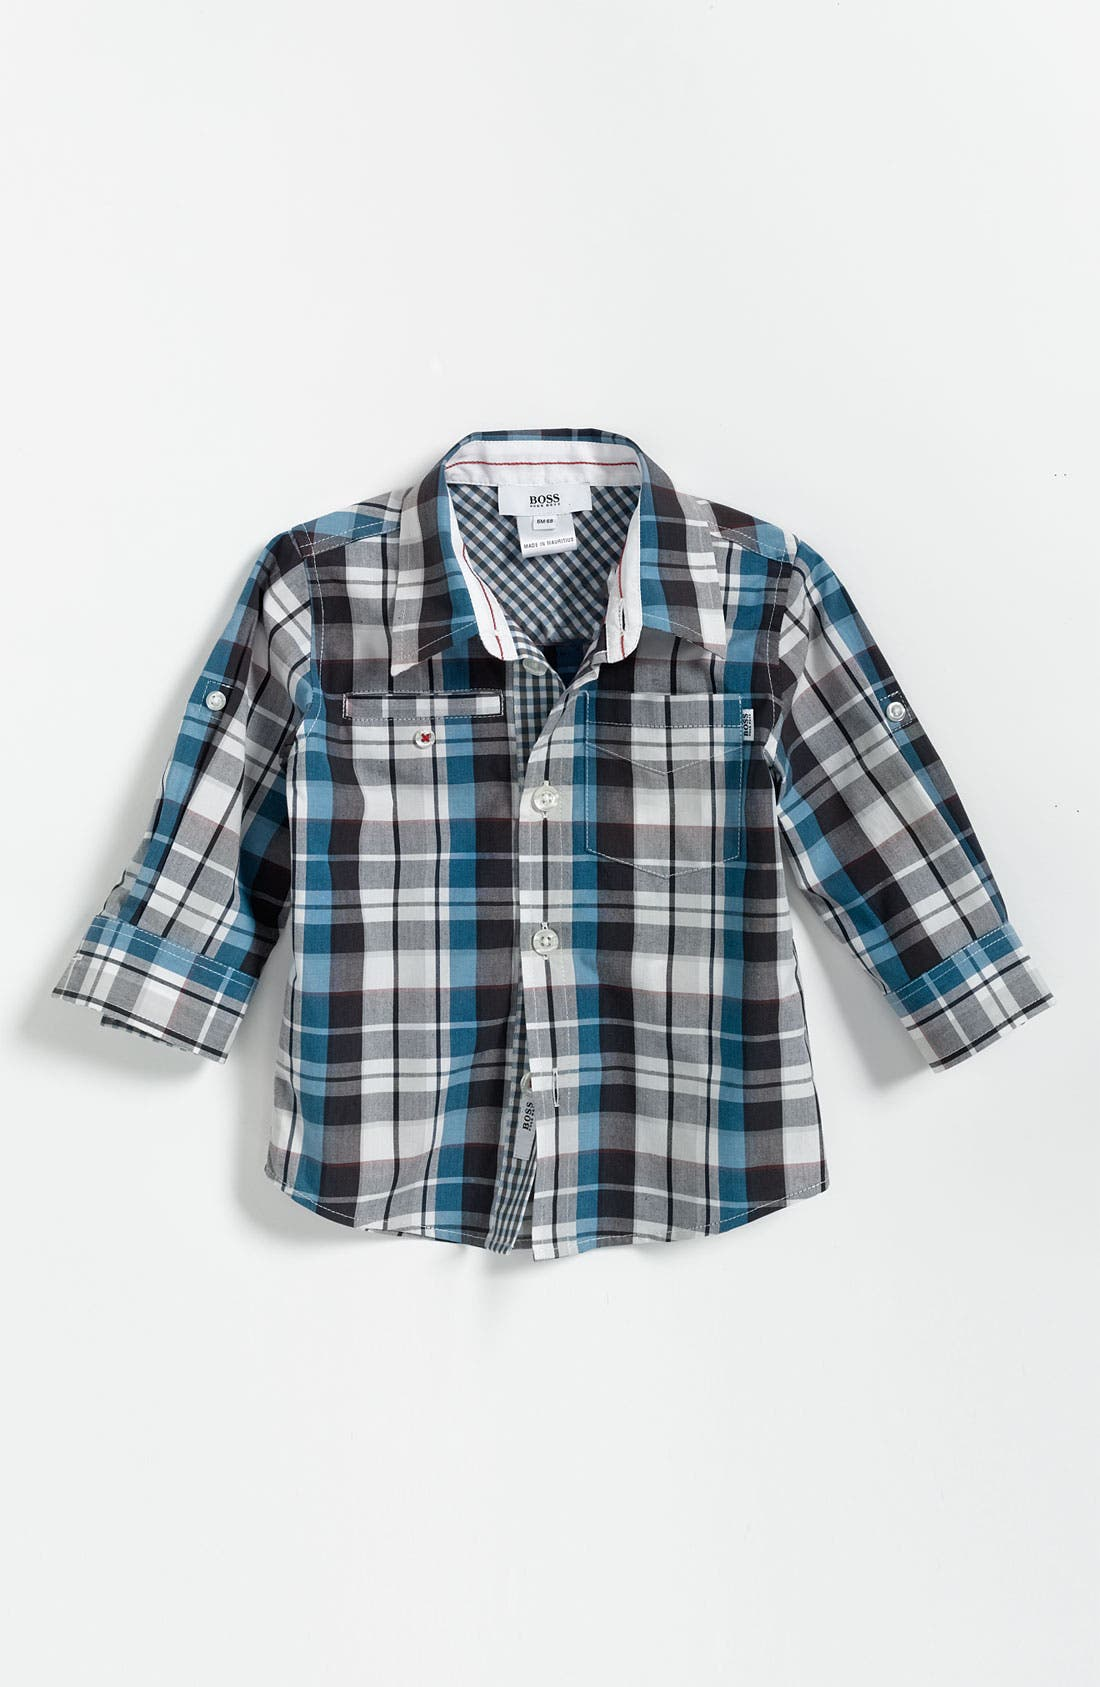 Main Image - BOSS Kidswear Check Print Shirt (Toddler)